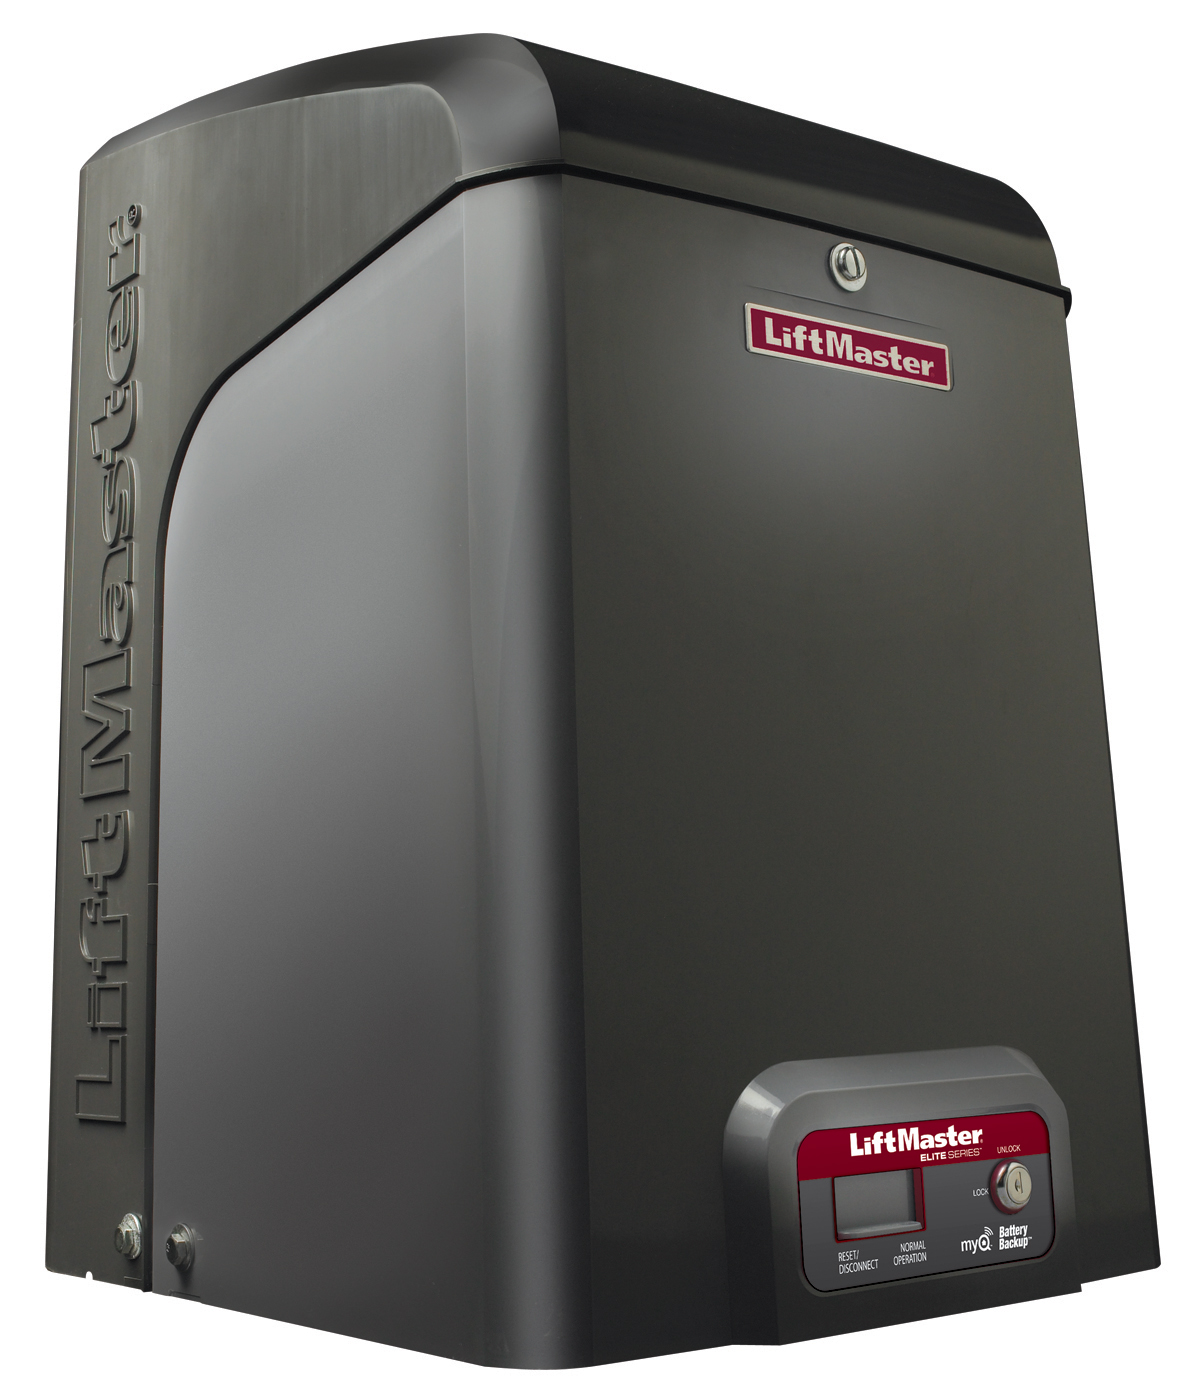 Liftmaster next generation photography